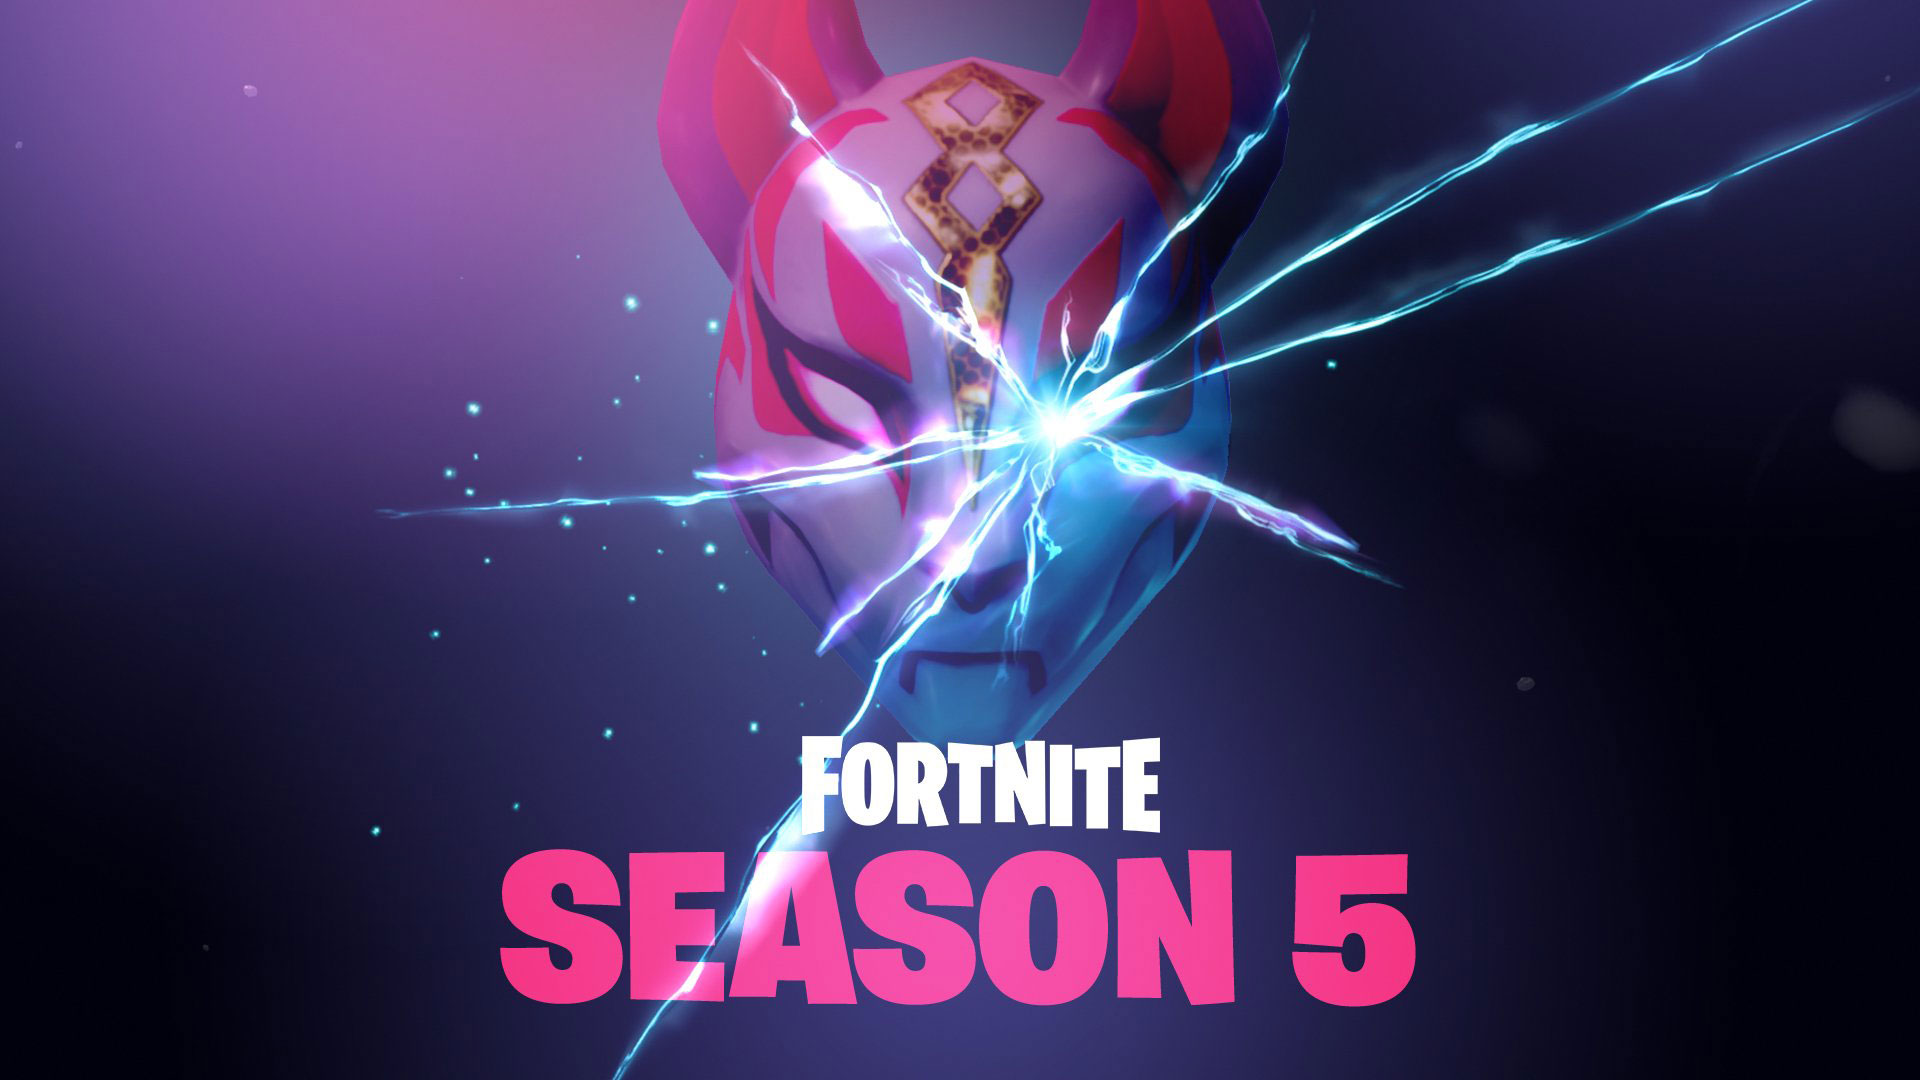 Fortnite Wallpapers Hd Iphone Mobile Versions Pro Fit Slim